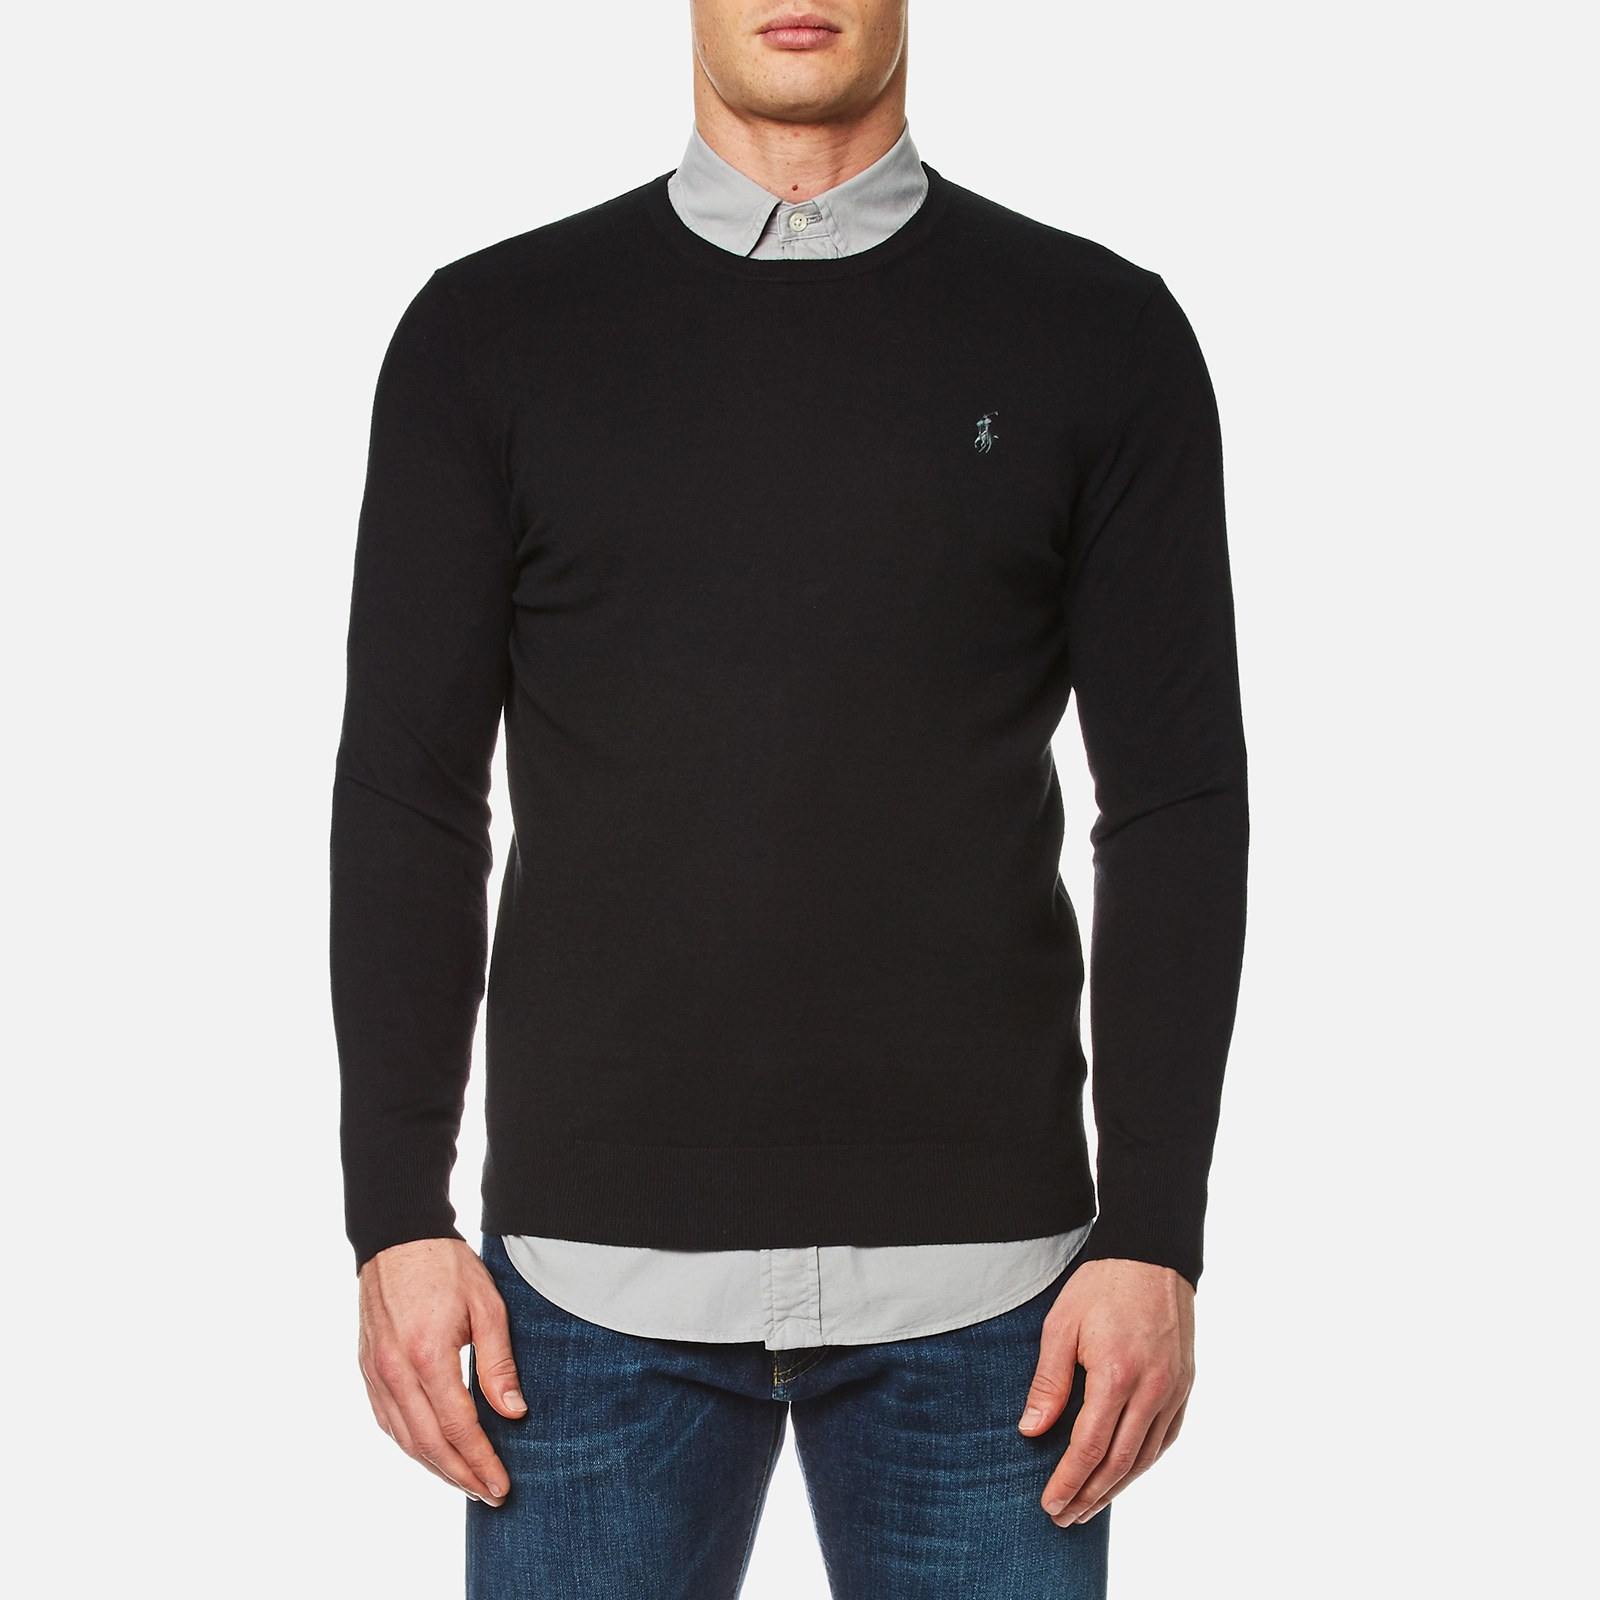 825c8ed91 Polo Ralph Lauren Men's Crew Neck Cotton Blend Knit Jumper - Black - Free  UK Delivery over £50